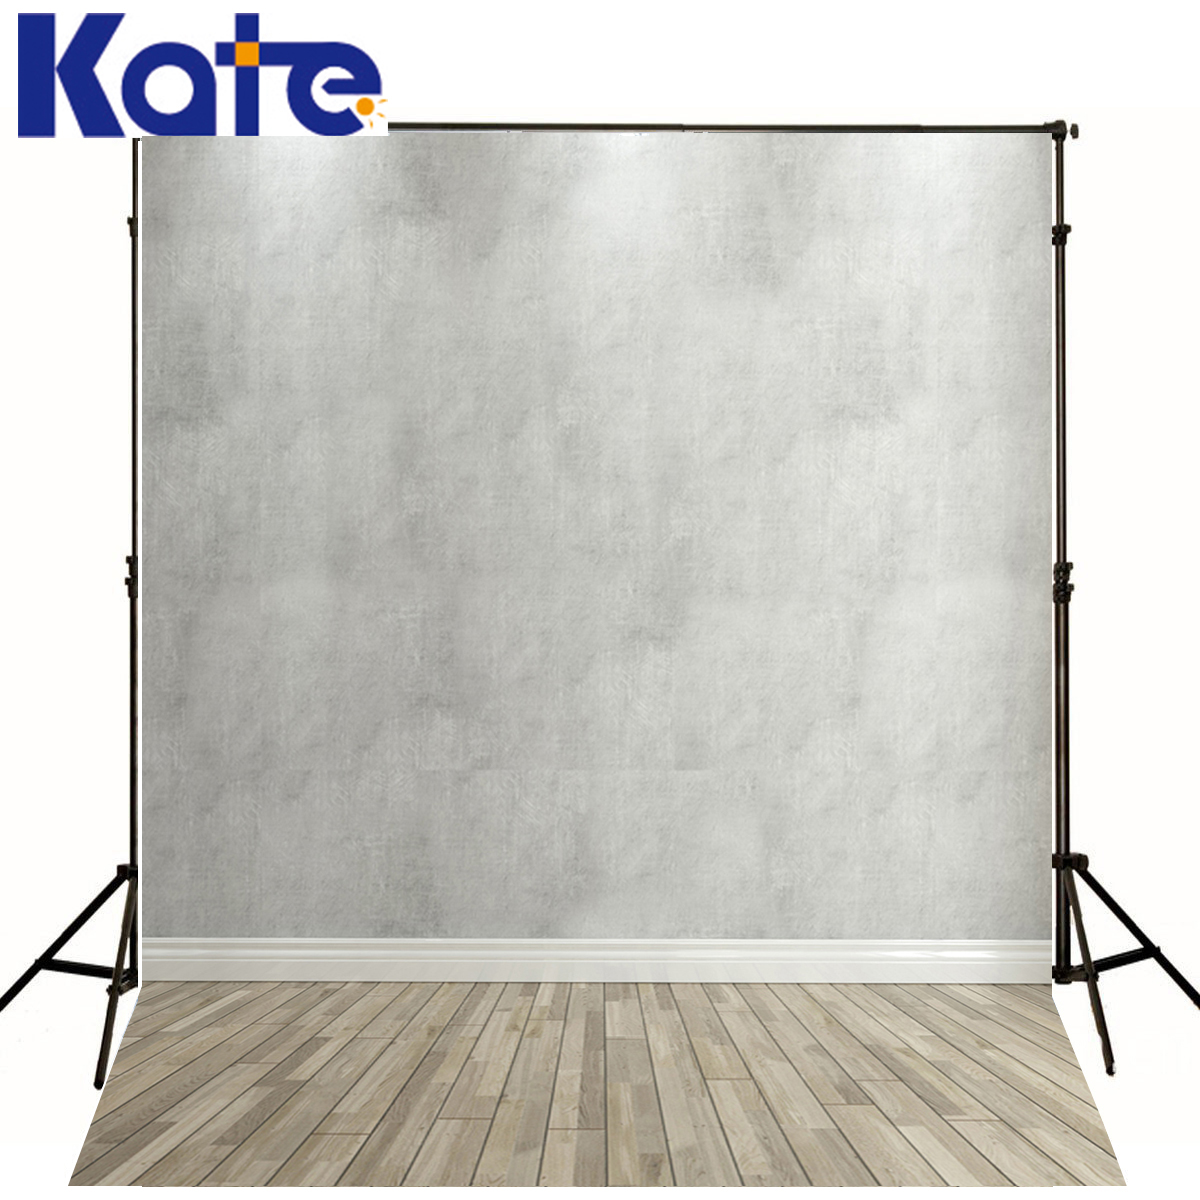 Kate Wood Background Photography Solid White Wall Backdrop Photo Wood Floor Photocall Backgrounds For Photo Studio J01676 kate 5x7ft retro brick wall backgrounds for photo studio for children photography background microfiber photo background